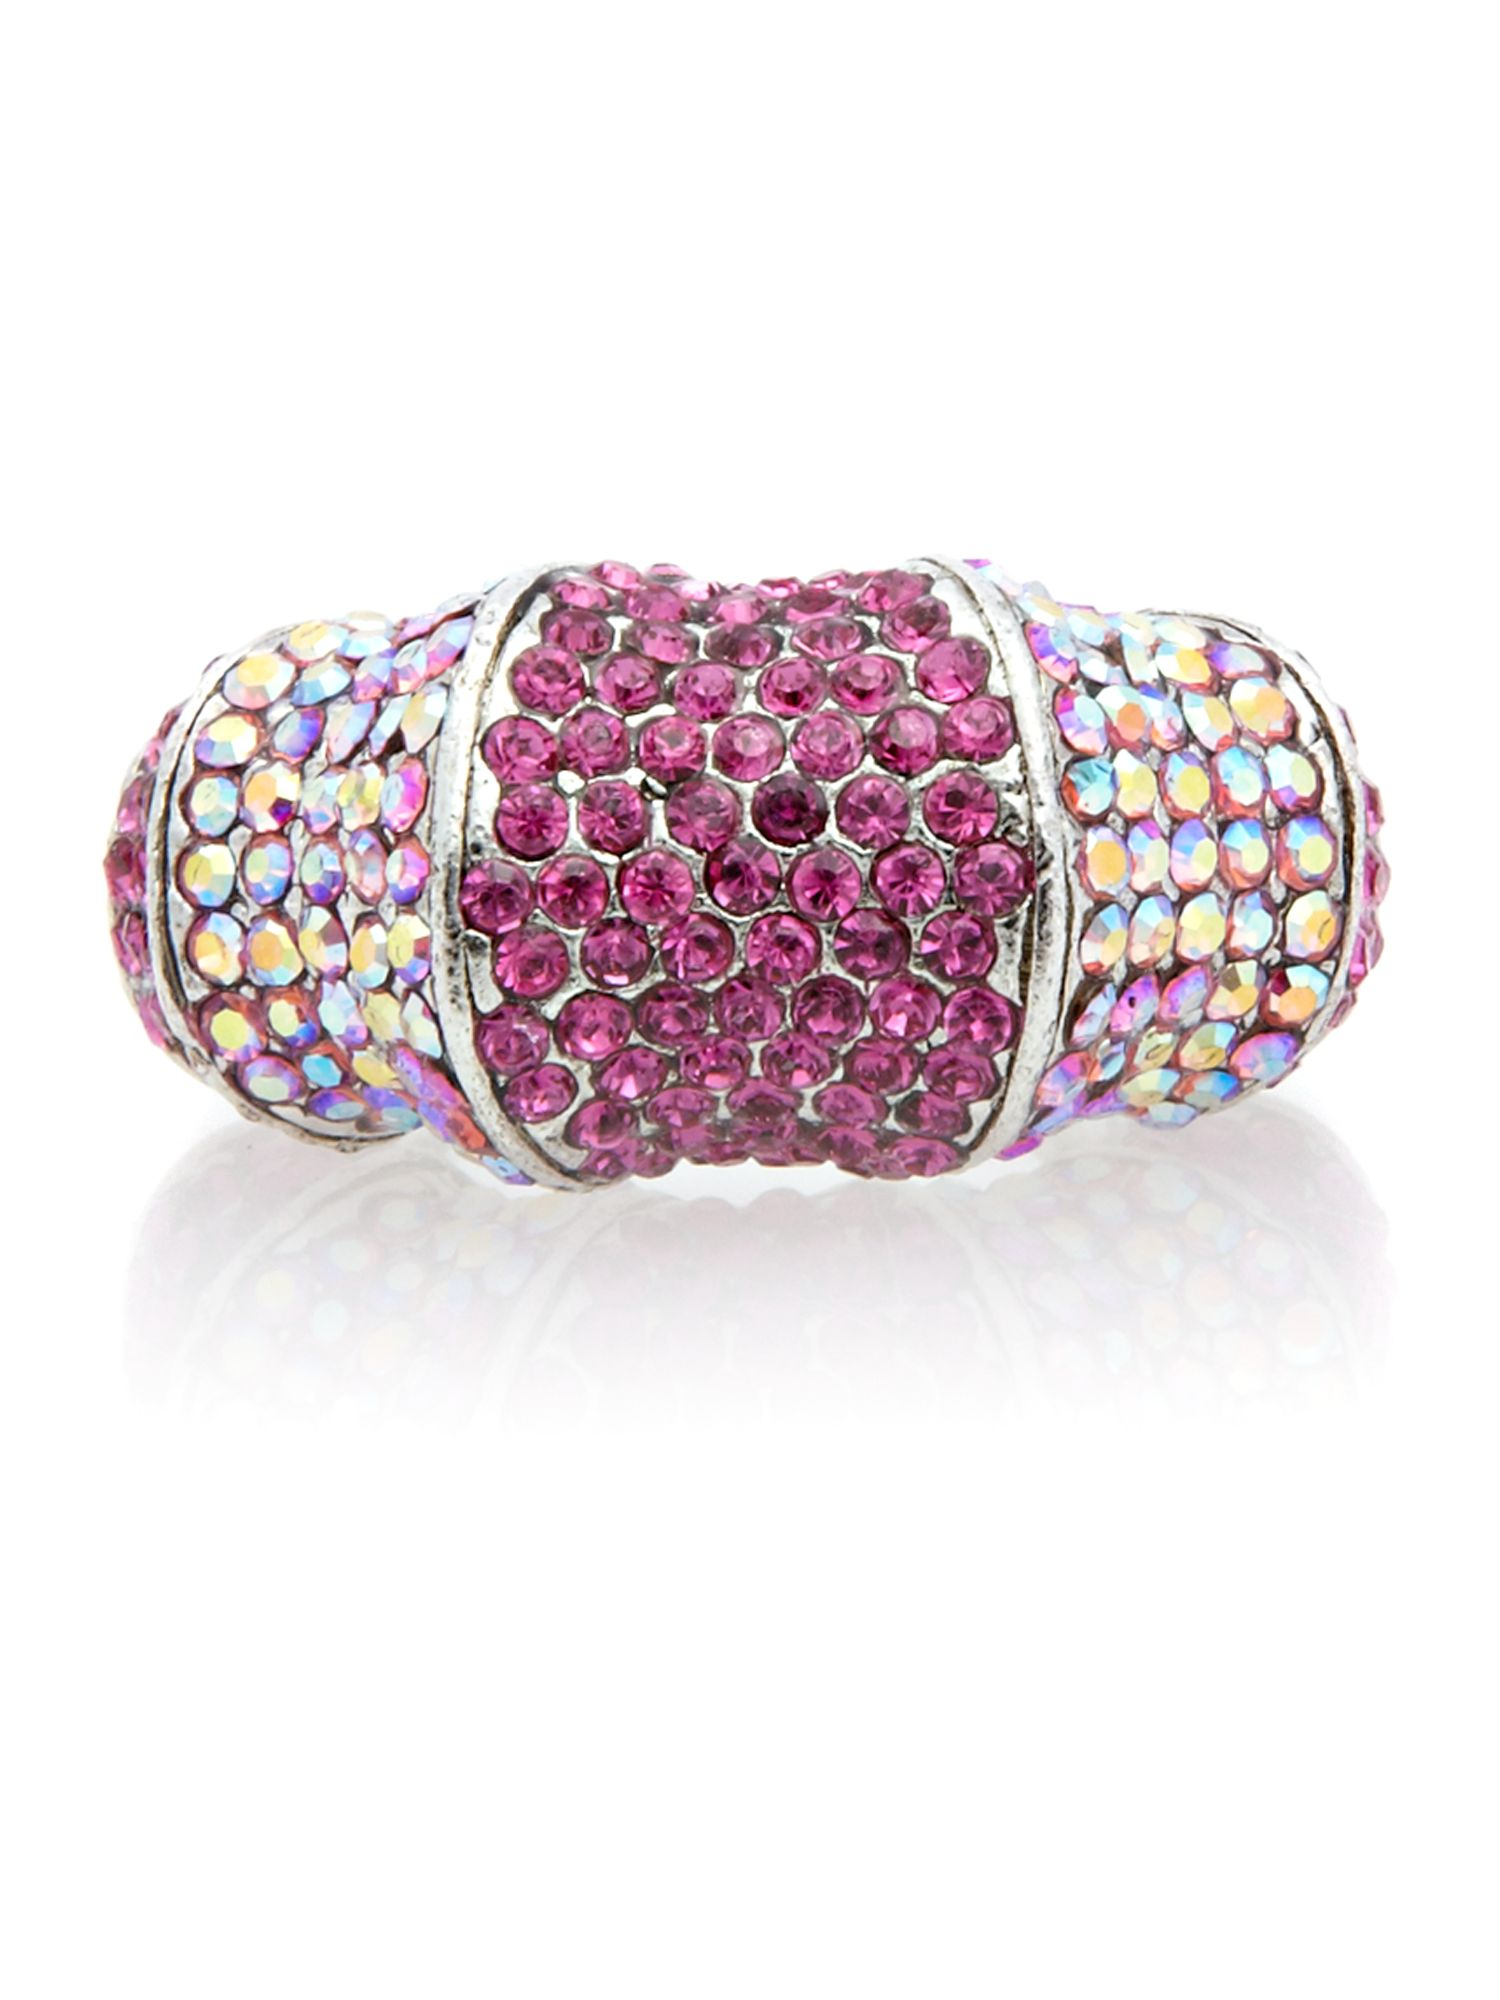 Gemini Fuchsia ring with swarovski crystals